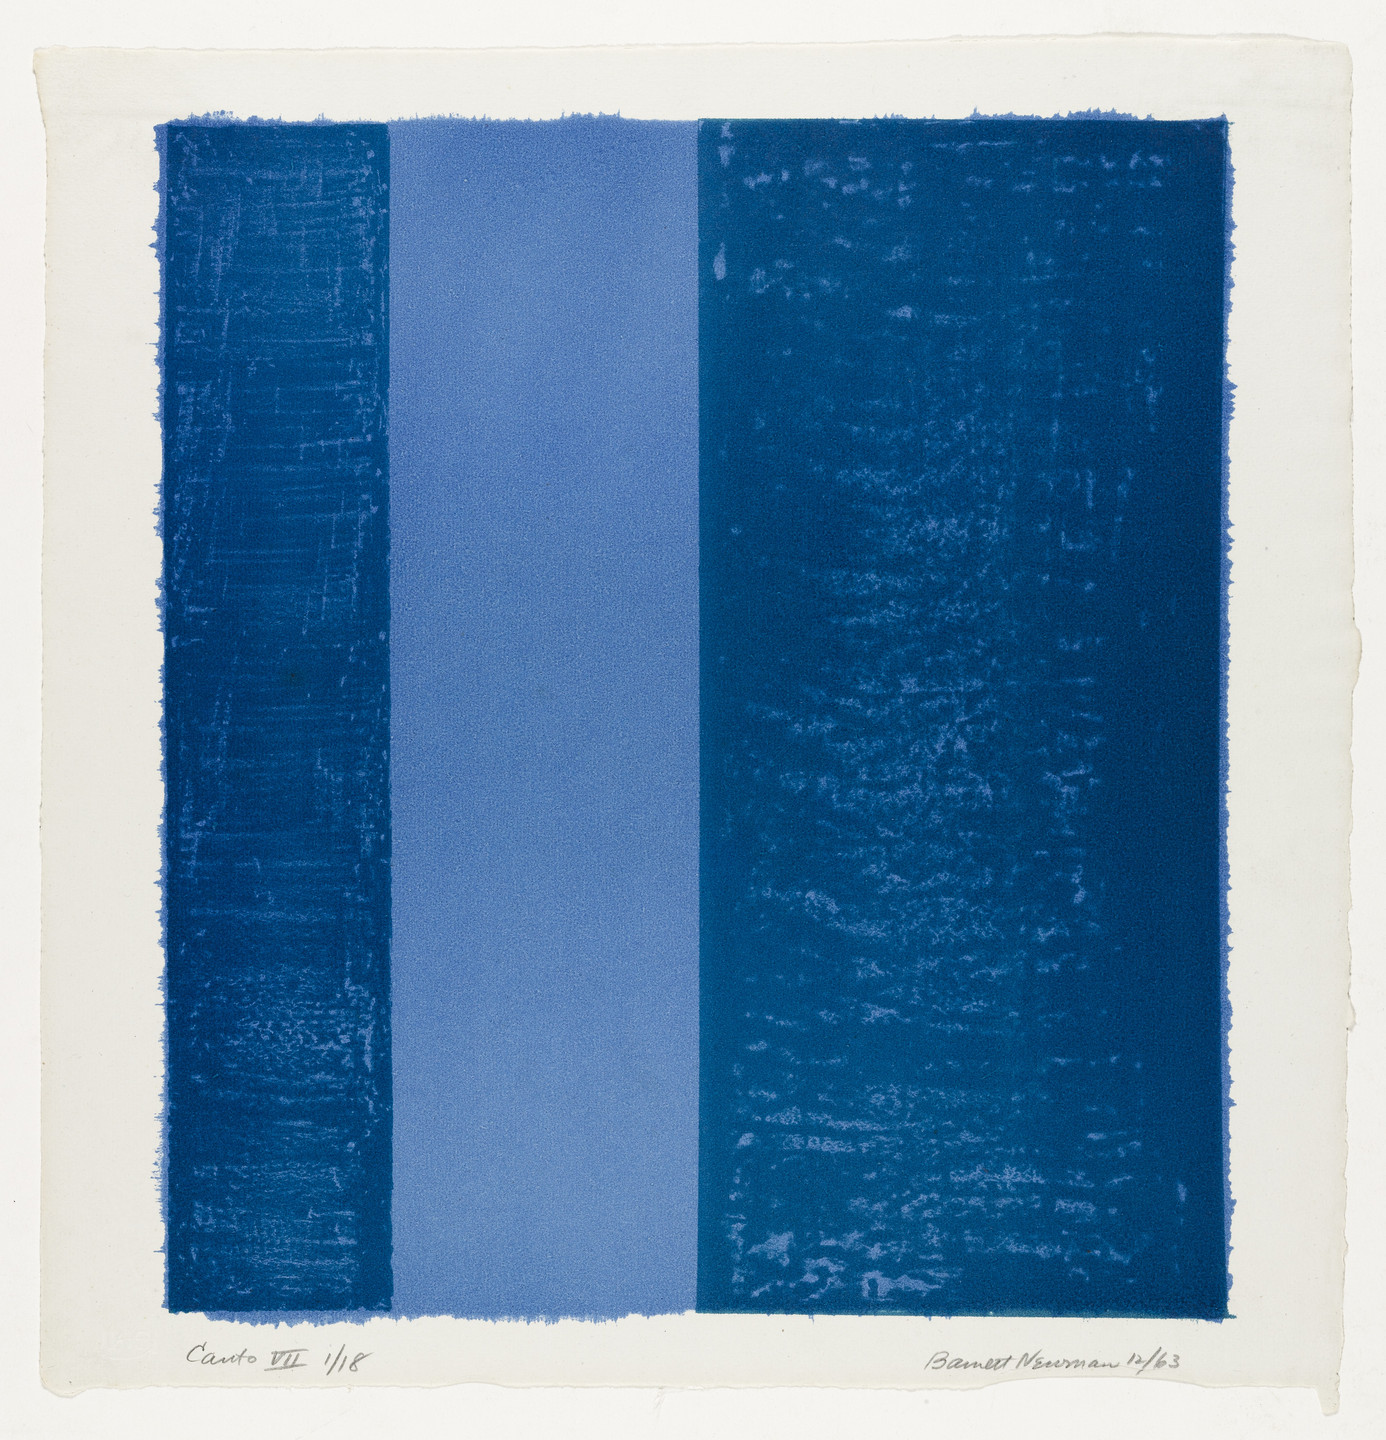 Barnett Newman. Canto VII from 18 Cantos. 1963